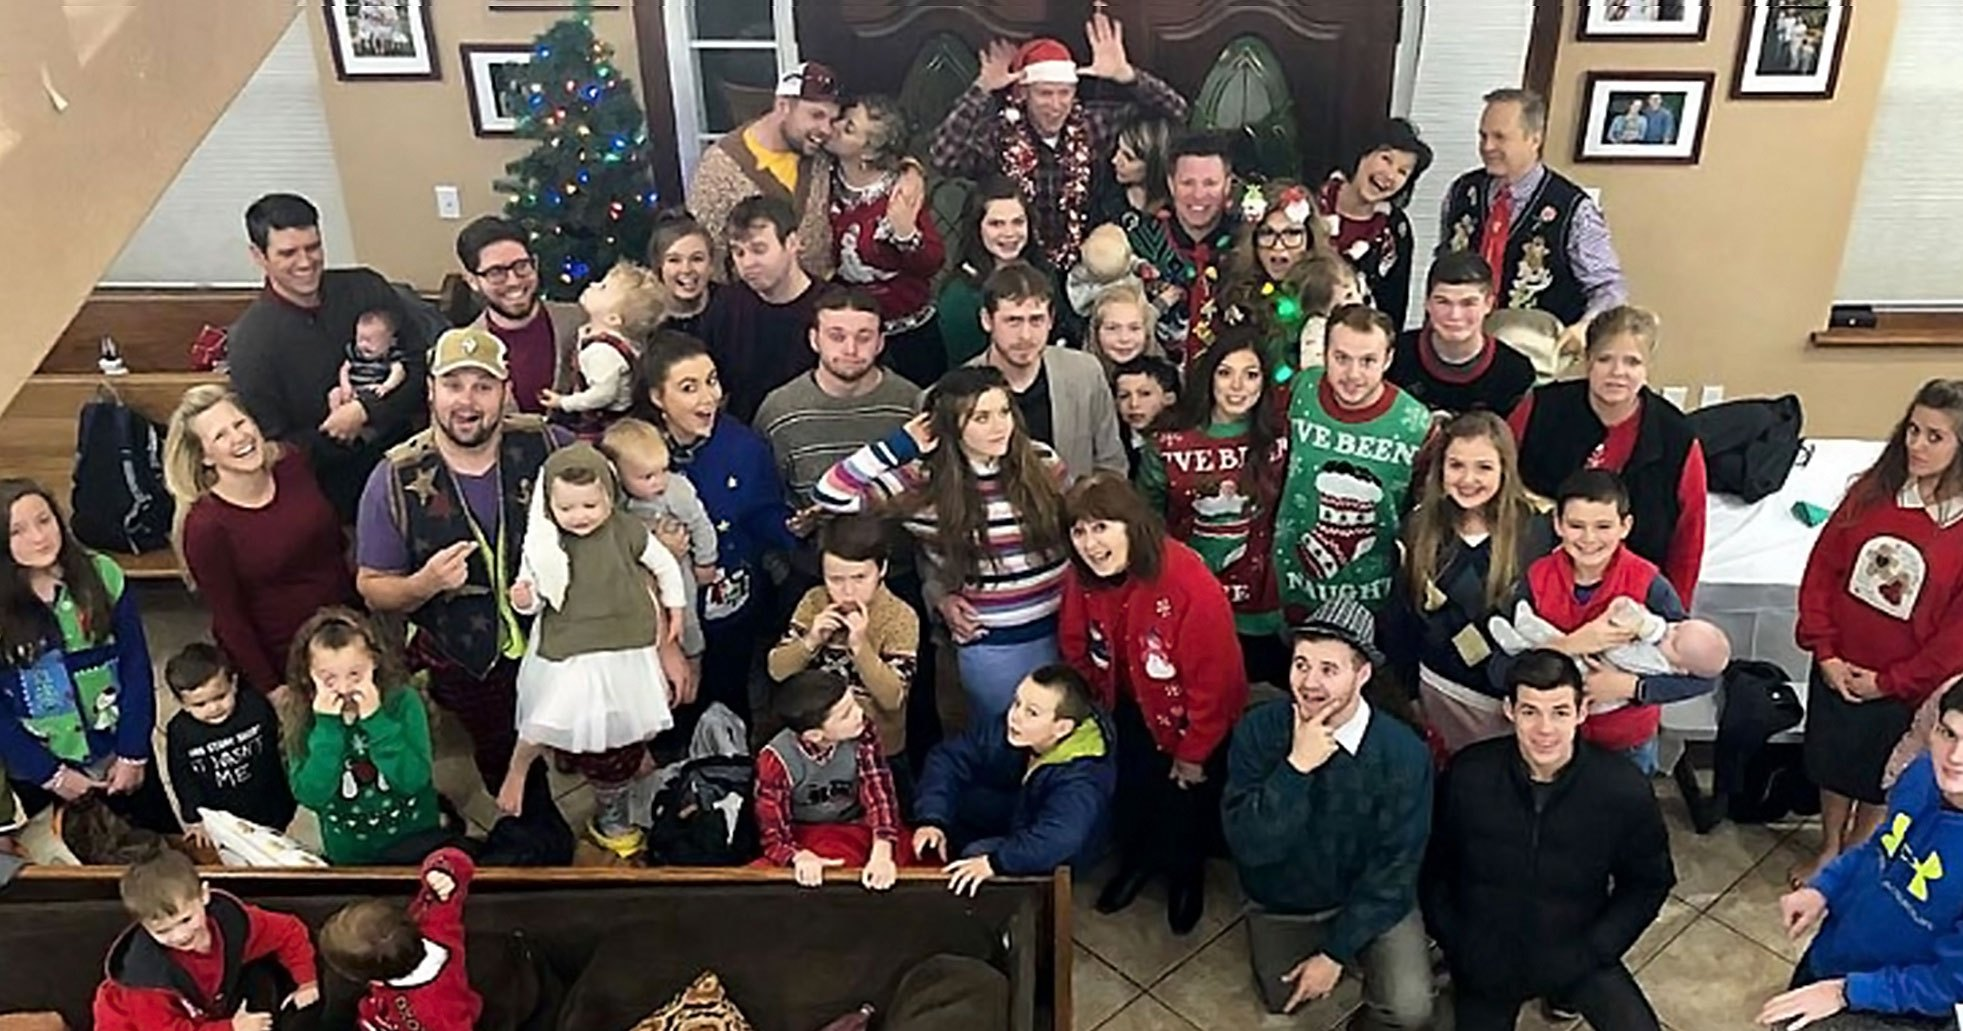 Duggar Family Has First Ugly Christmas Sweater Party Pics